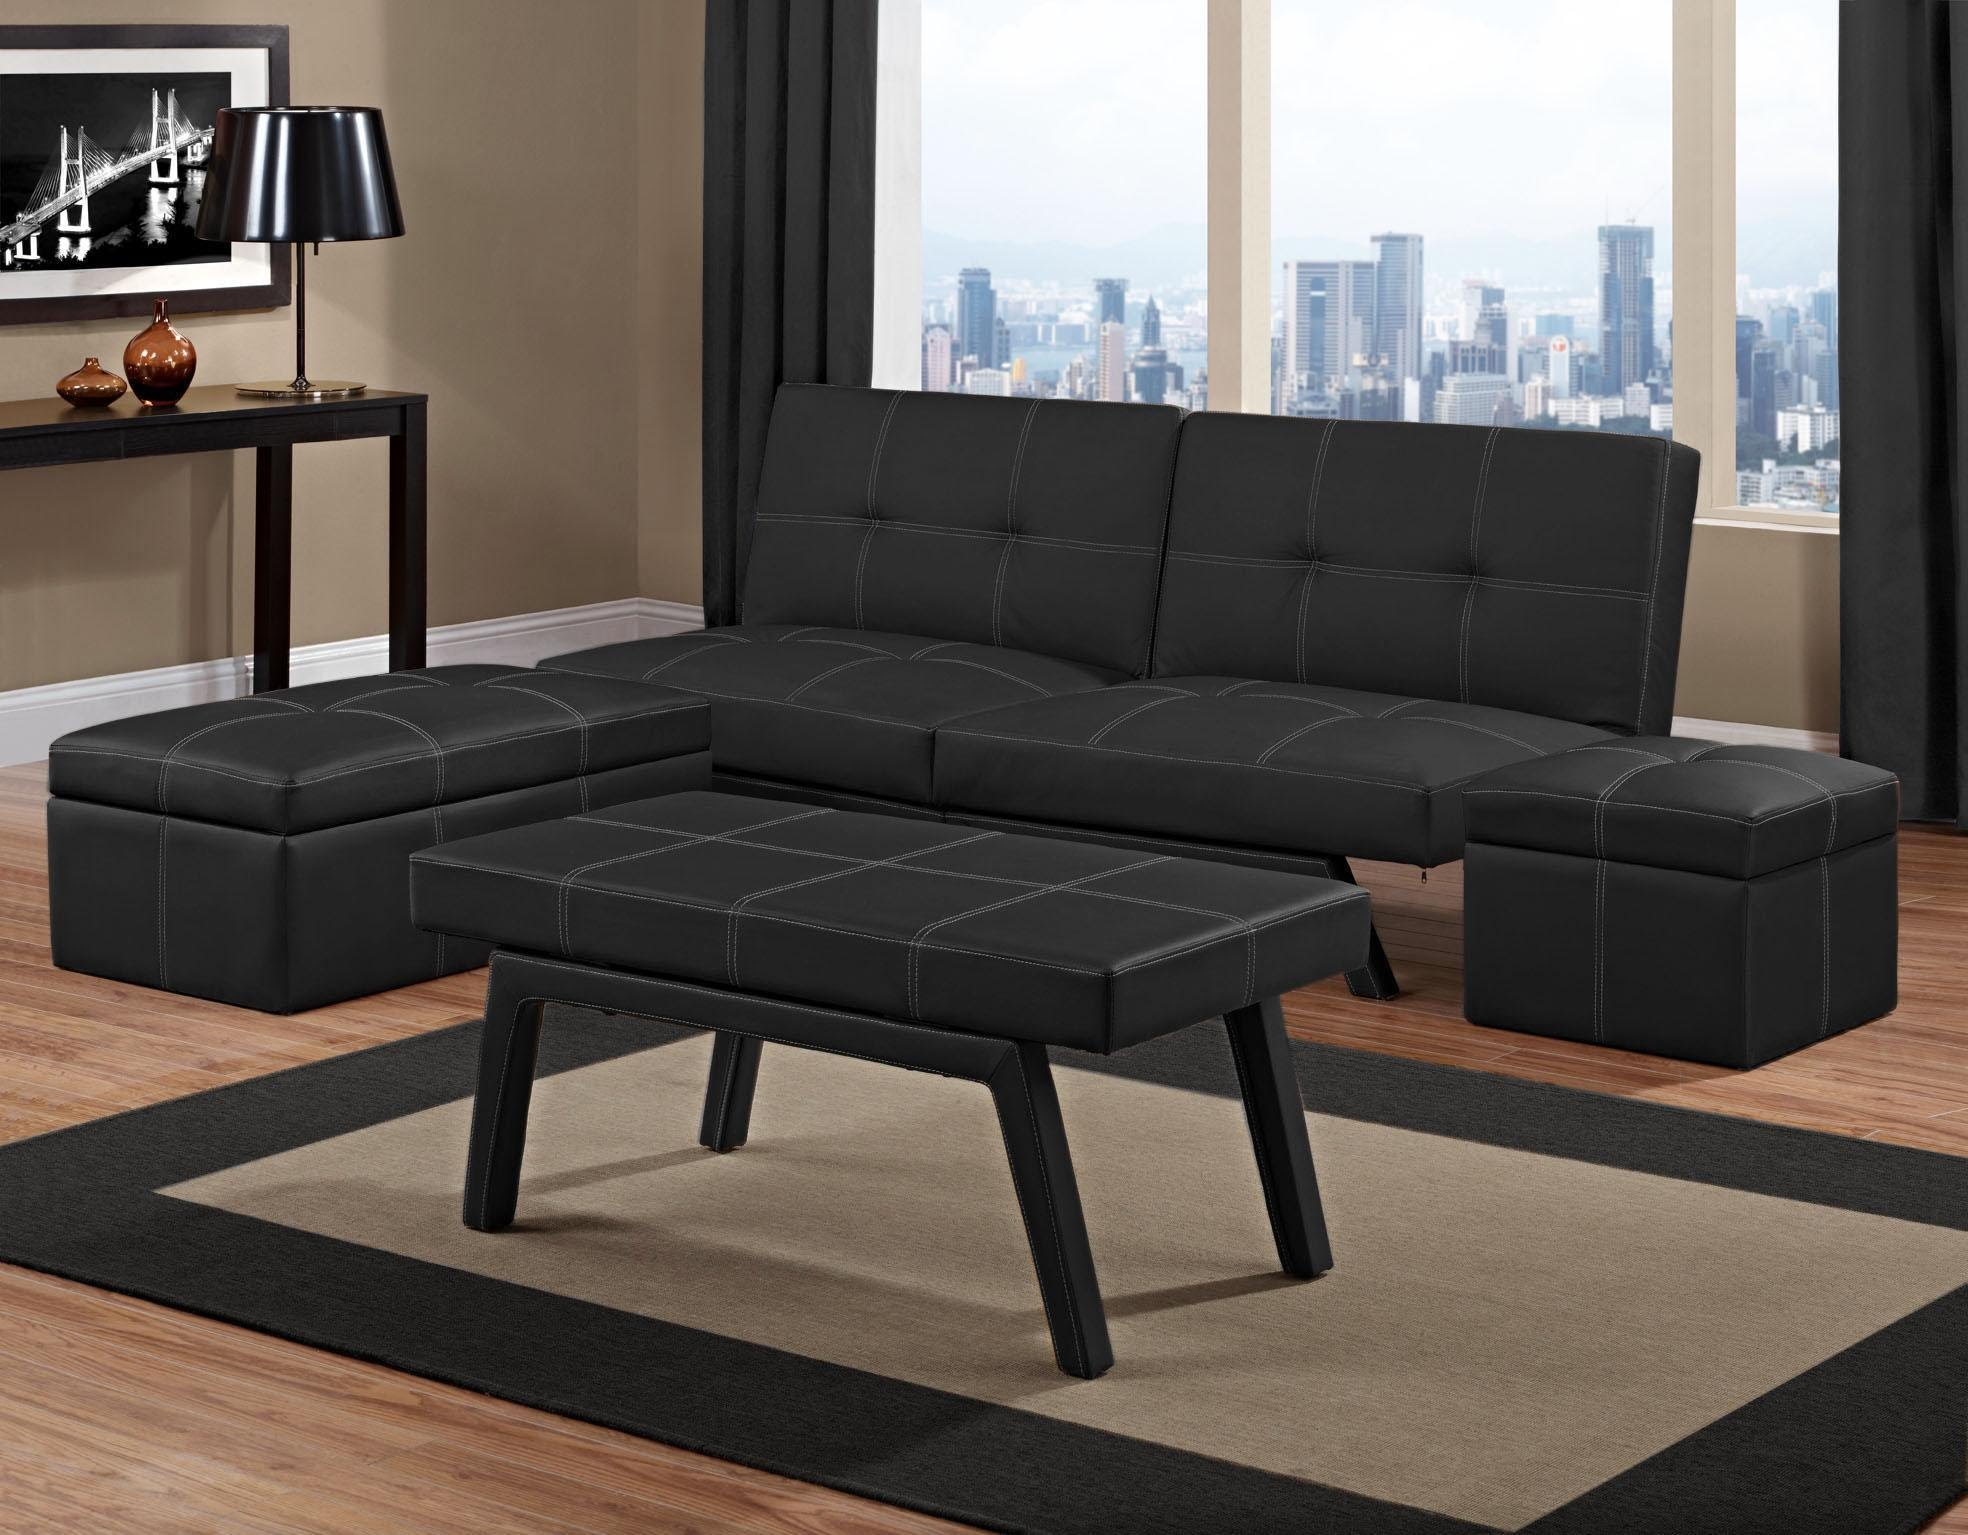 Fancy Futon Sofa Bed Living Room Set